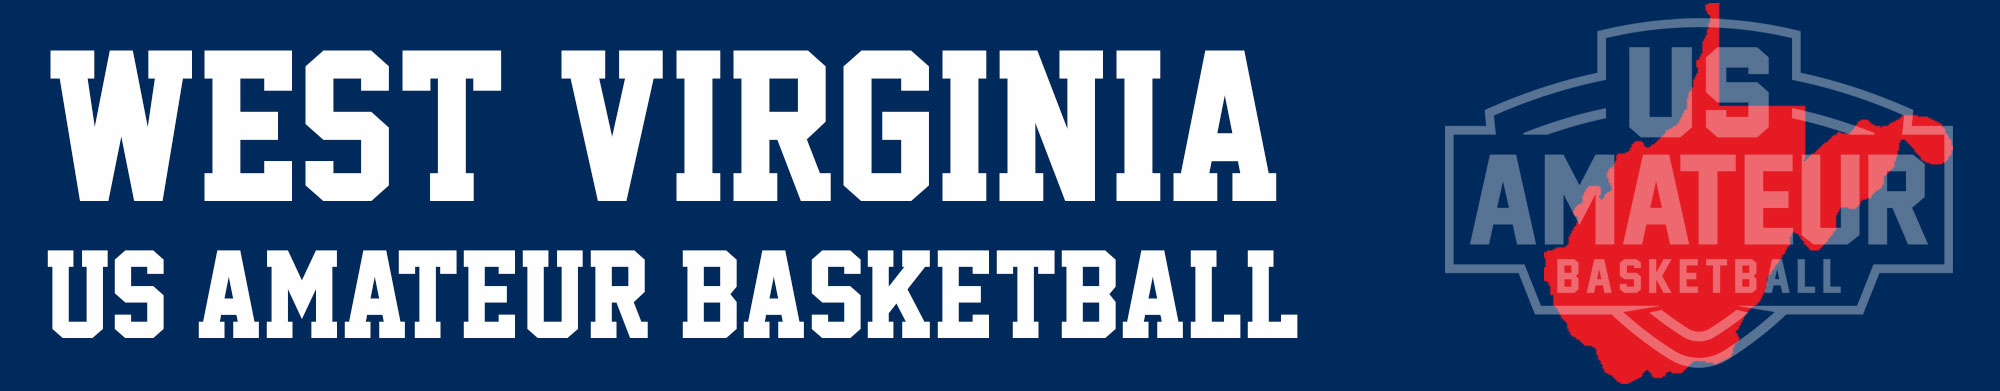 West Virginia US Amateur Basketball